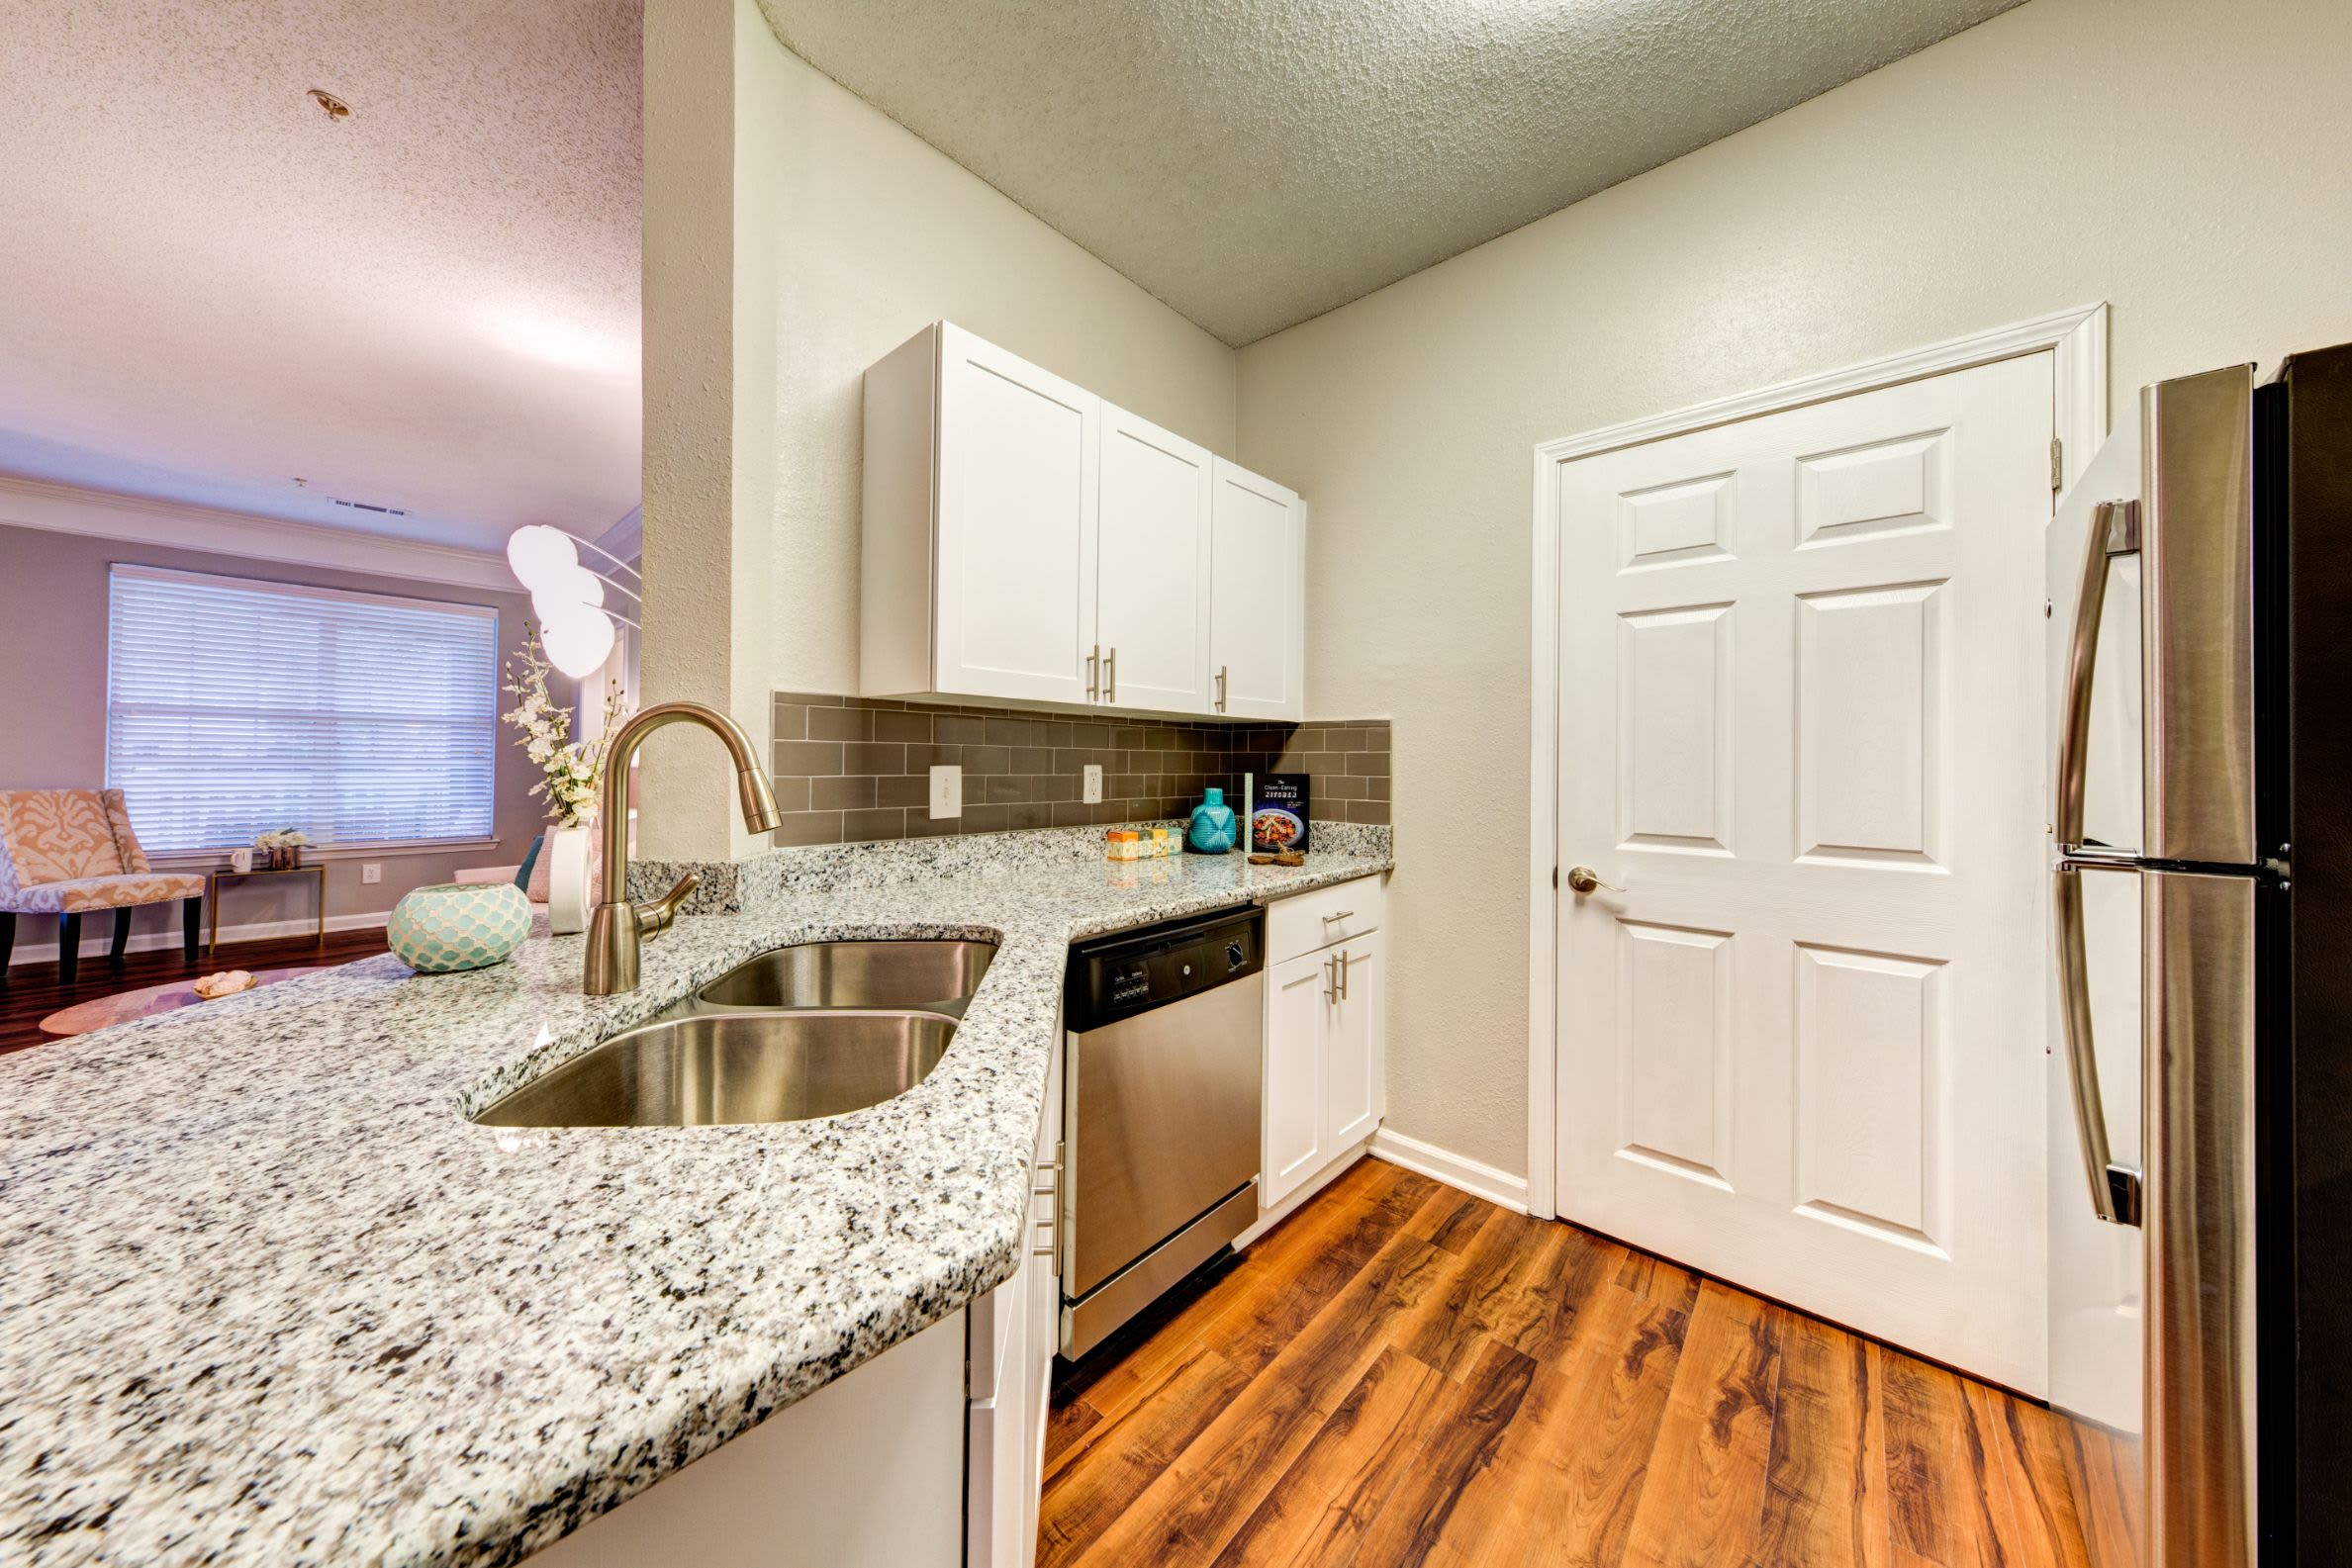 Kitchen wit granite counters and white cabinets at Marquis on Edwards Mill in Raleigh, North Carolina